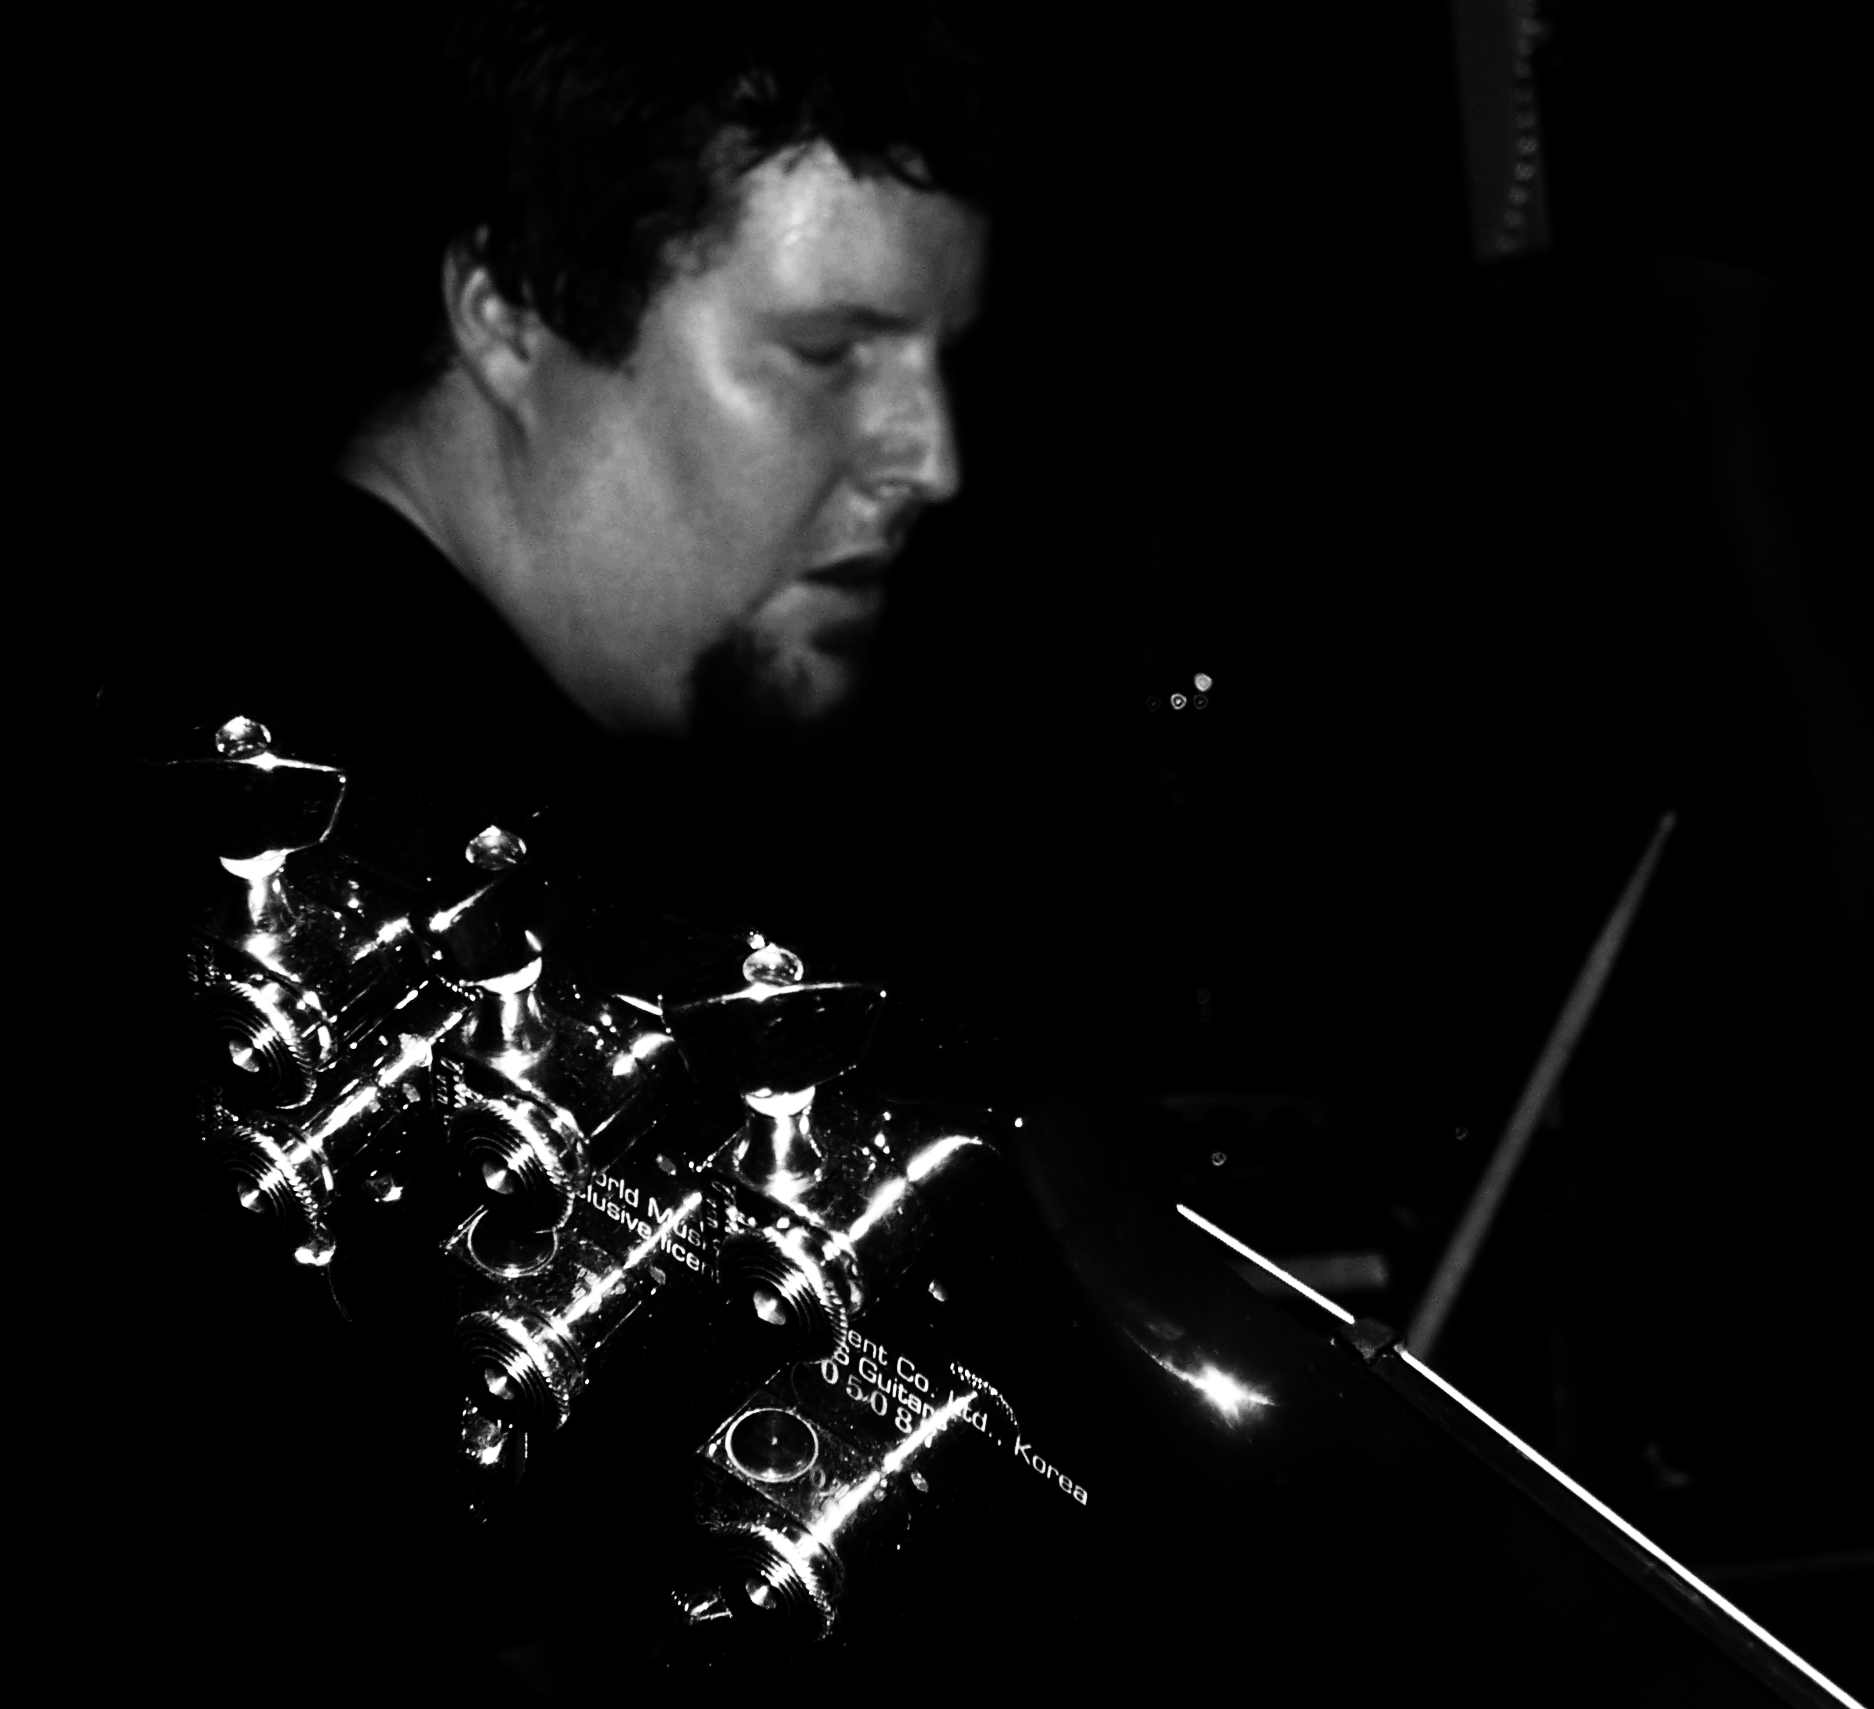 Bam-Jazz's Brian Sullivan on drums and percussion